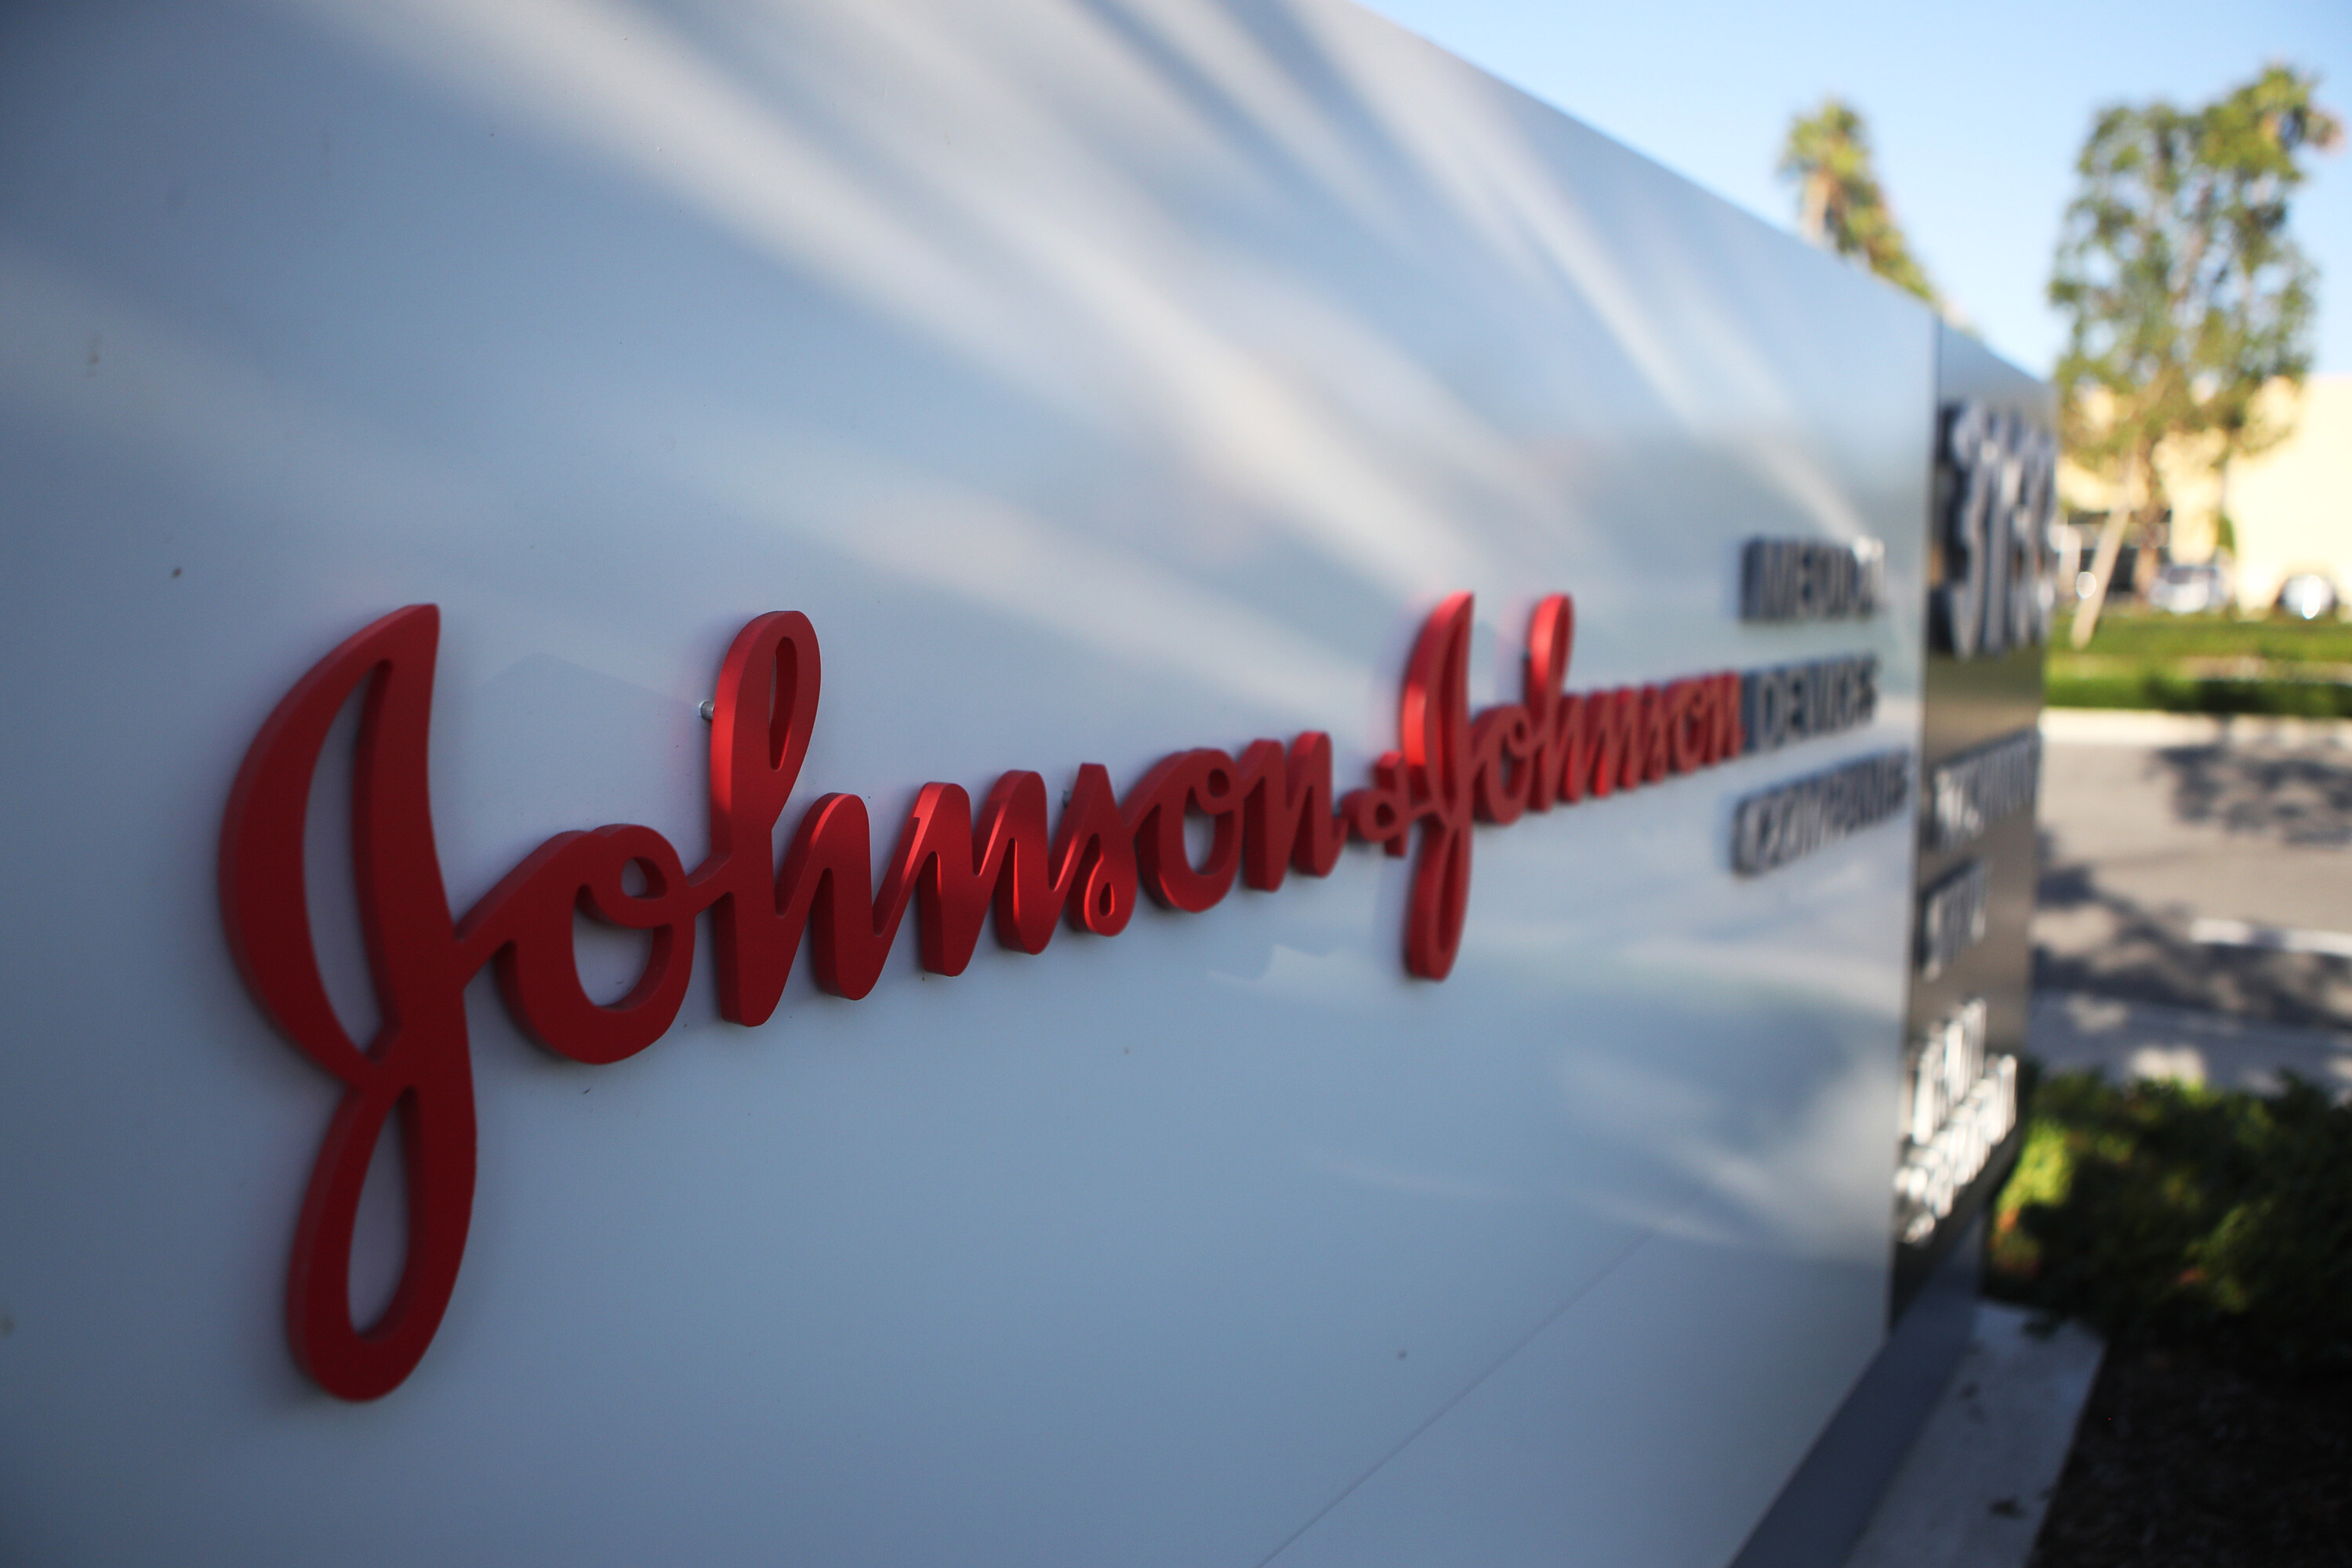 J&J Covid-19 vaccine lasts at least 8 months, protects against Delta variant, studies find